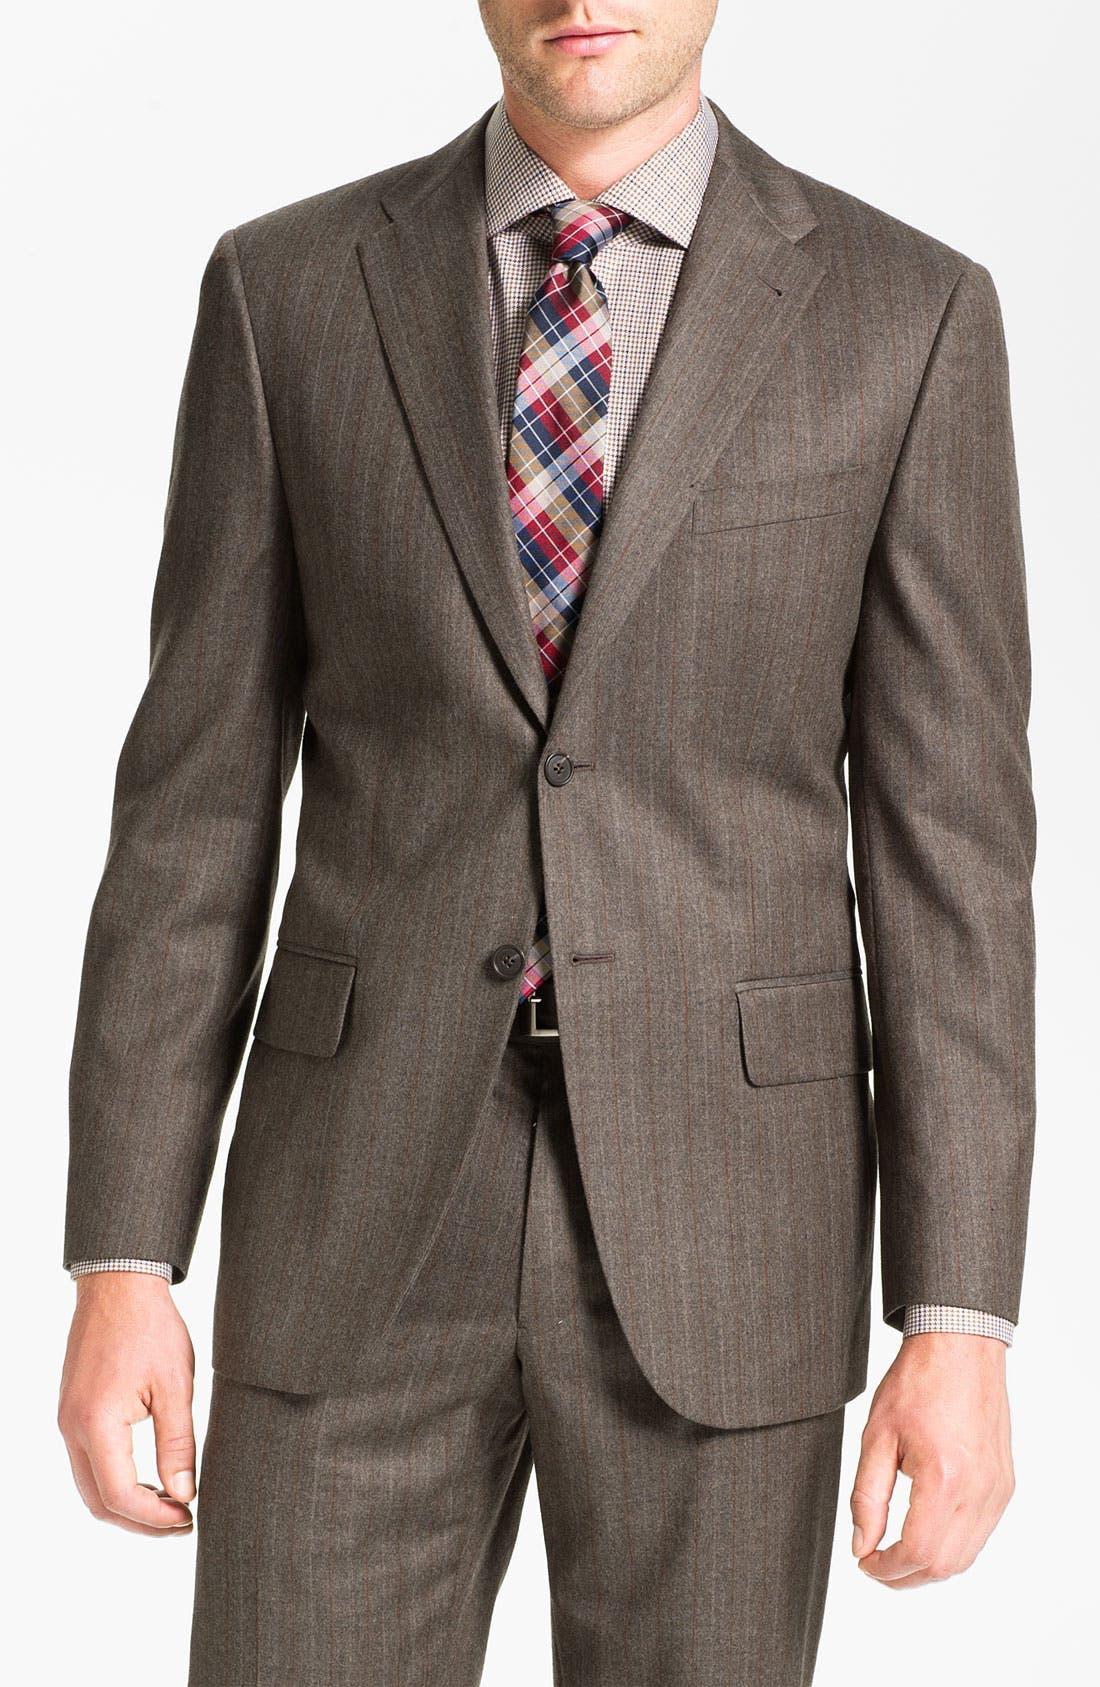 Main Image - Joseph Abboud 'Profile' Stripe Wool Suit